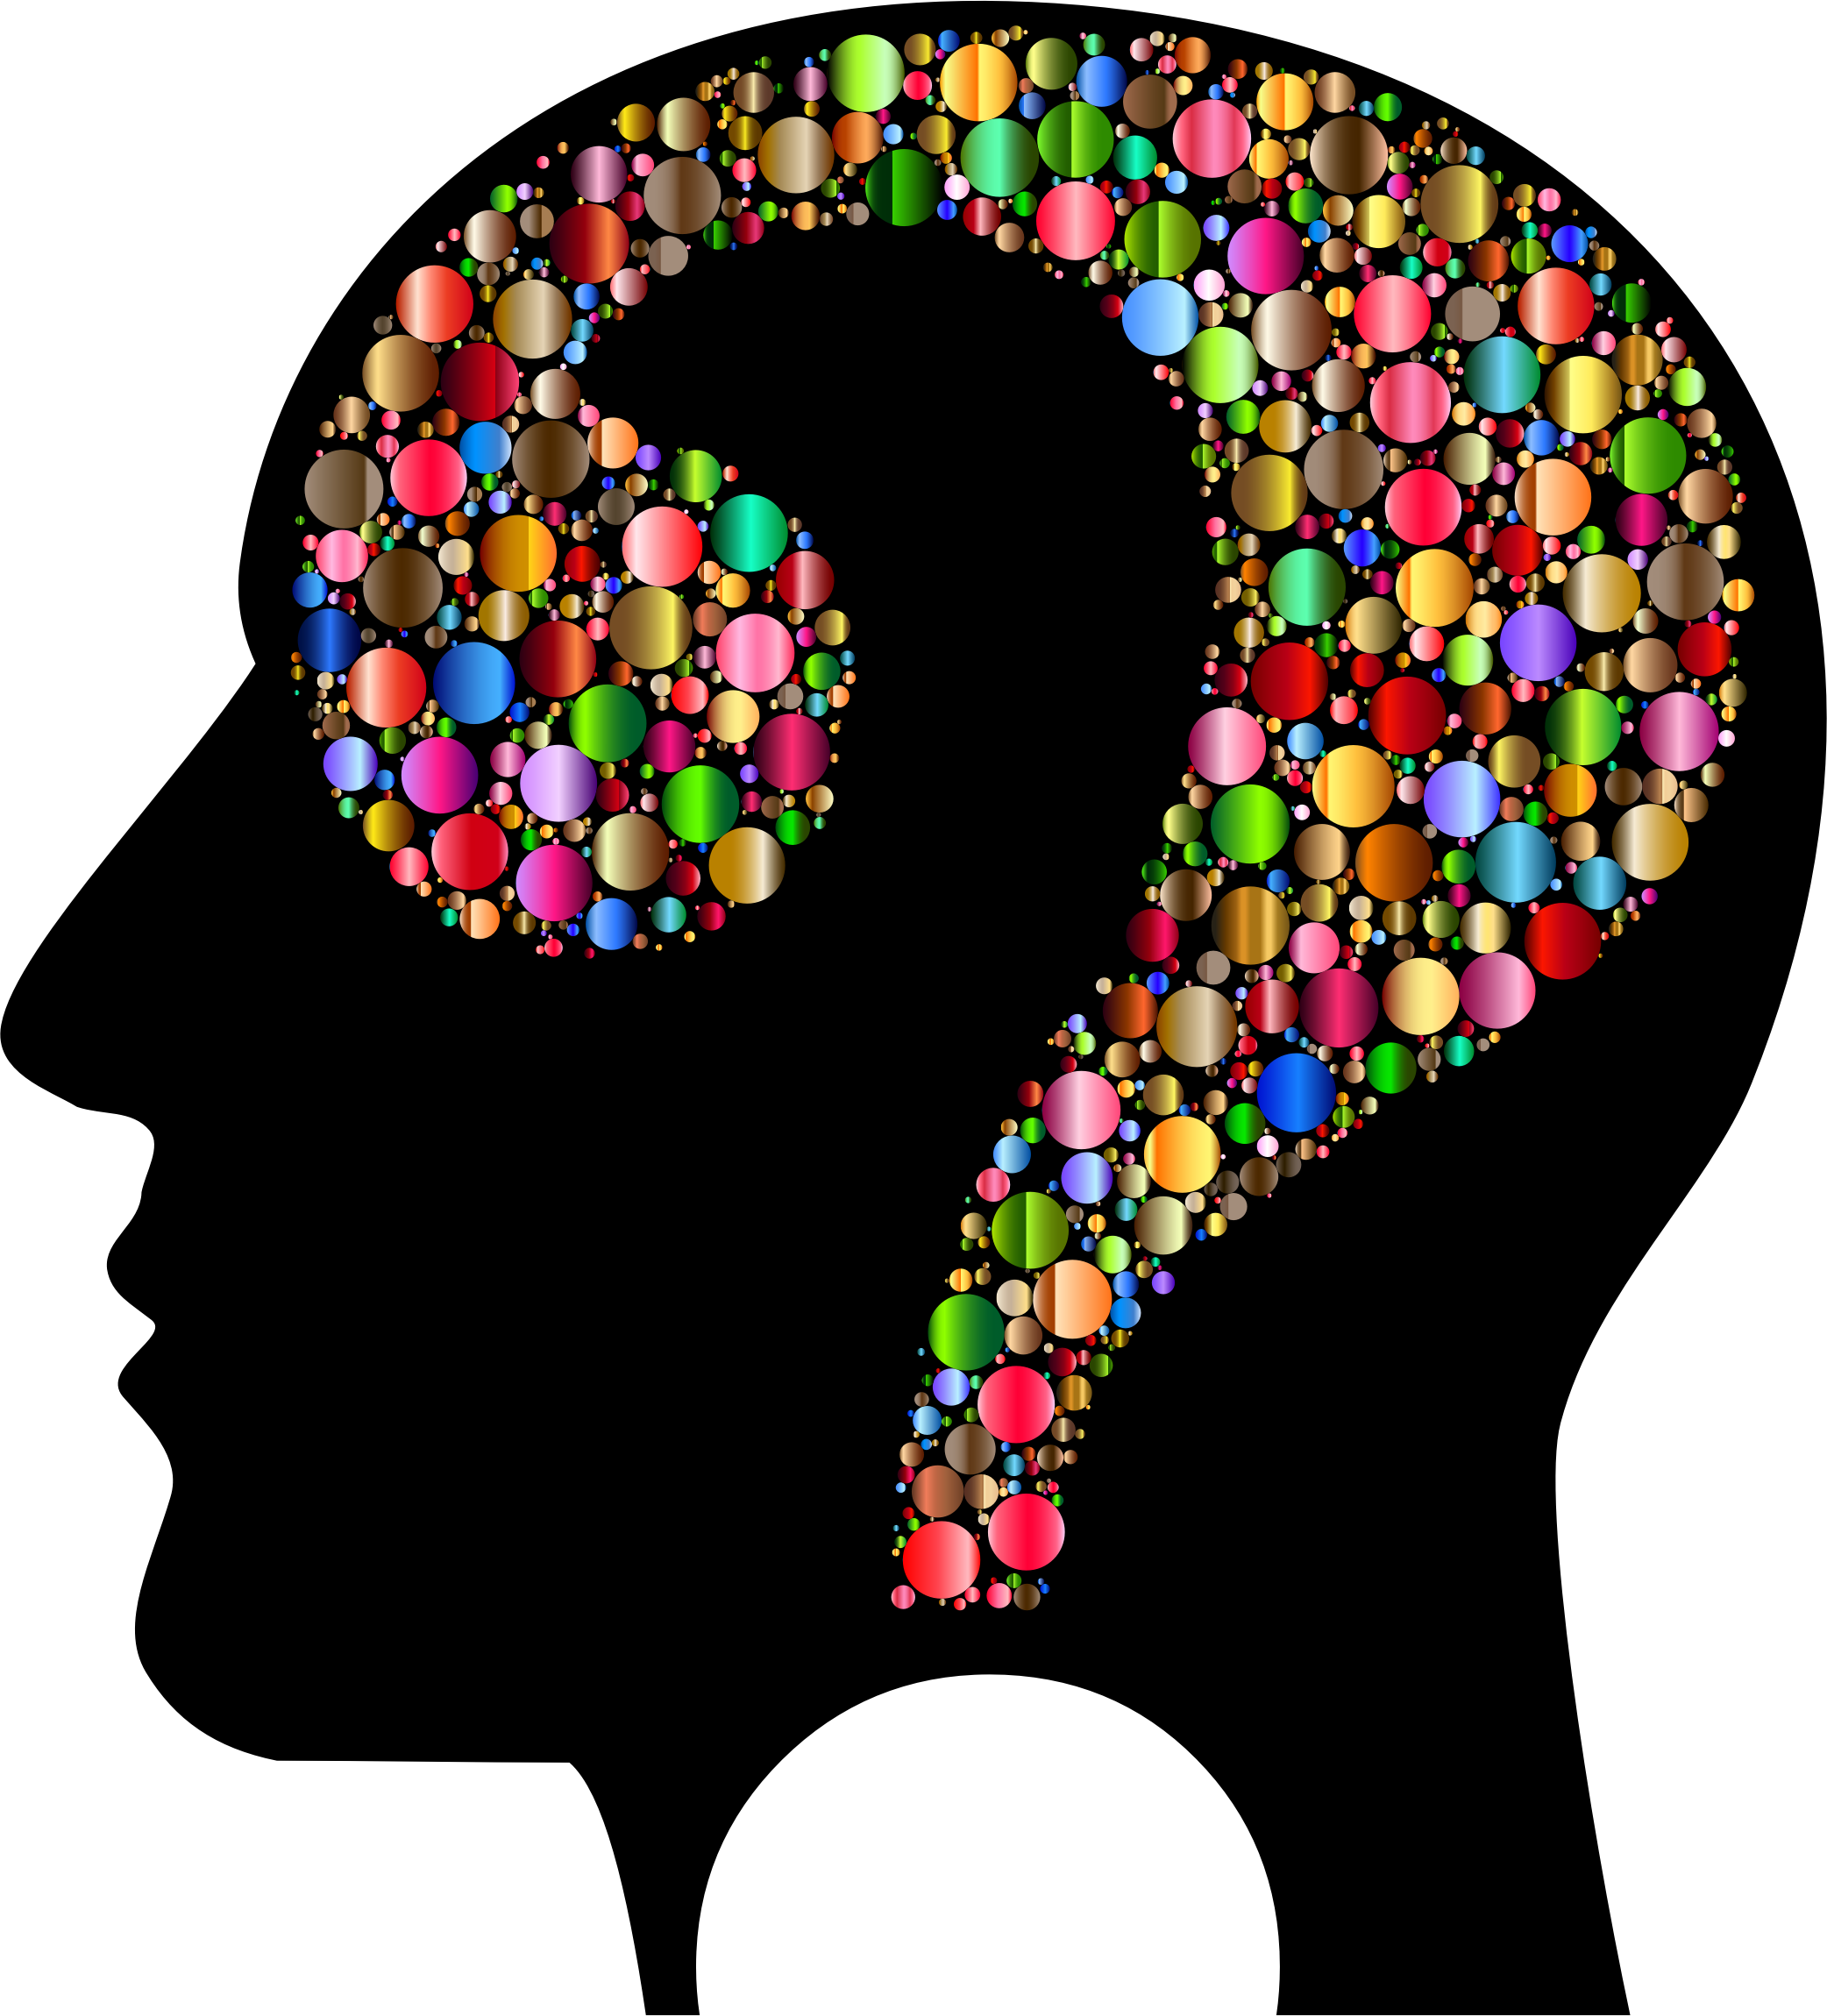 Colorful Question Head Circles 7 by GDJ